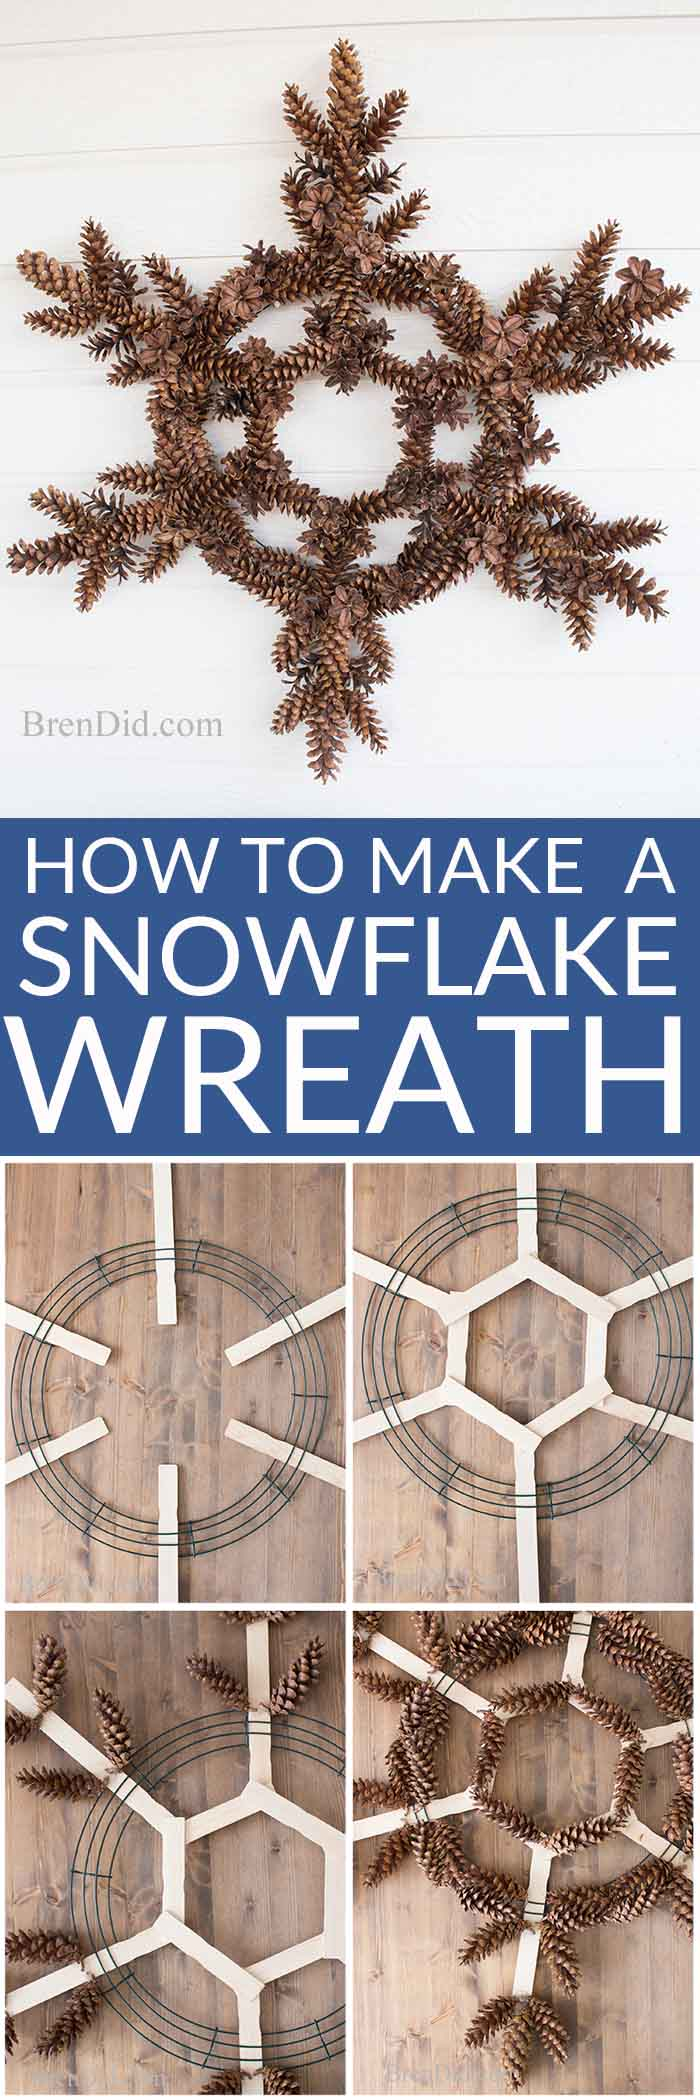 How to Make a Snowflake Pinecone Wreath from Bren DId